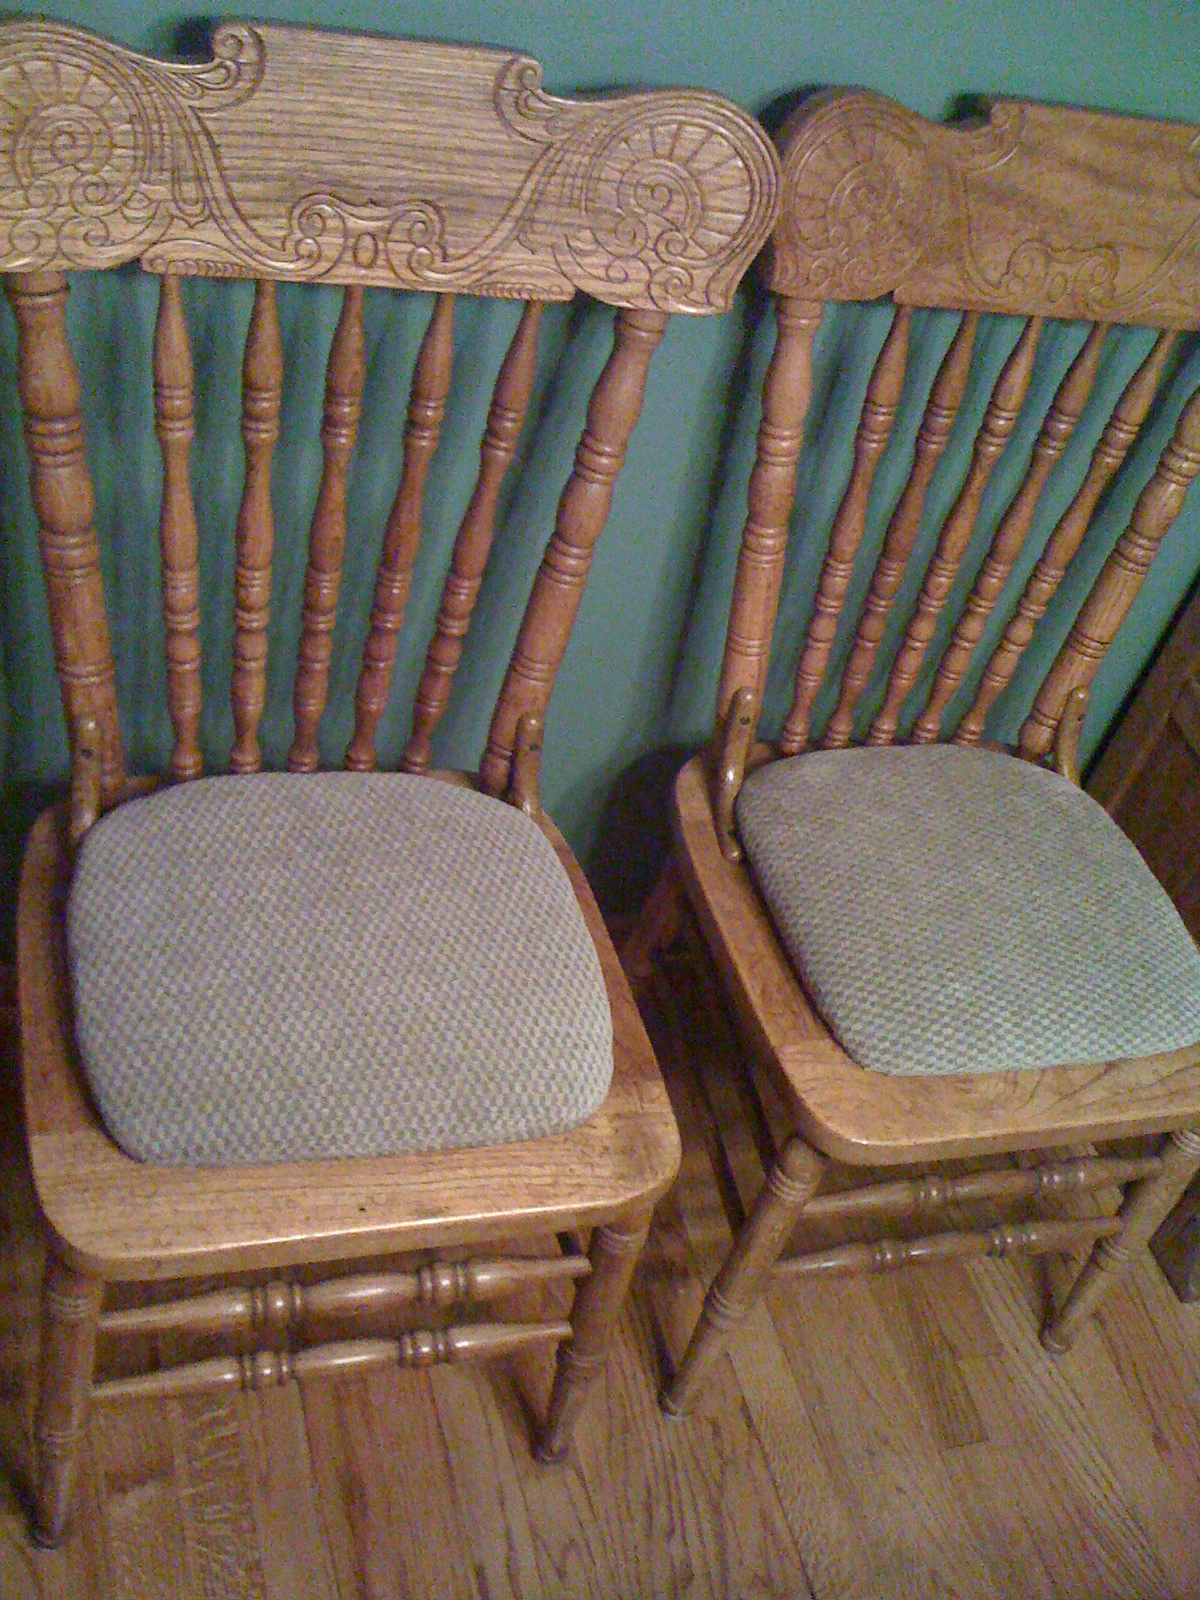 Under Asian Influence Craft Project Make Your Own Homemade Dining Chair Pads